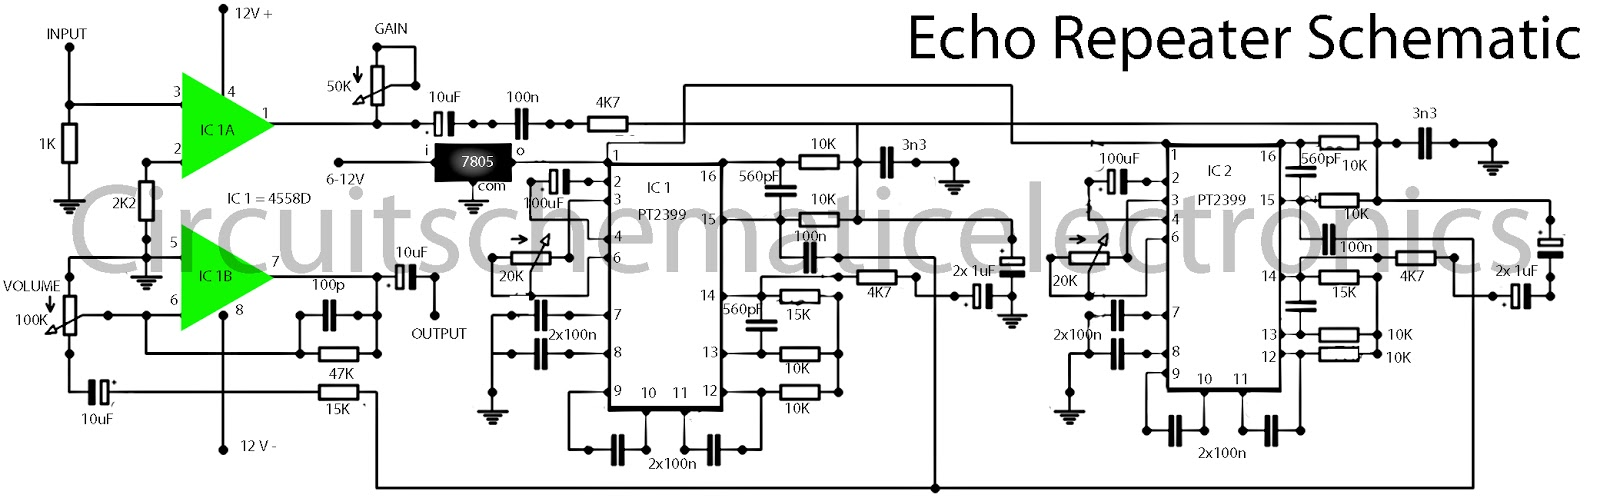 hight resolution of echo wiring diagram wiring diagram official echo wiring diagram wiring diagramecho wiring diagram schematic diagram dataecho